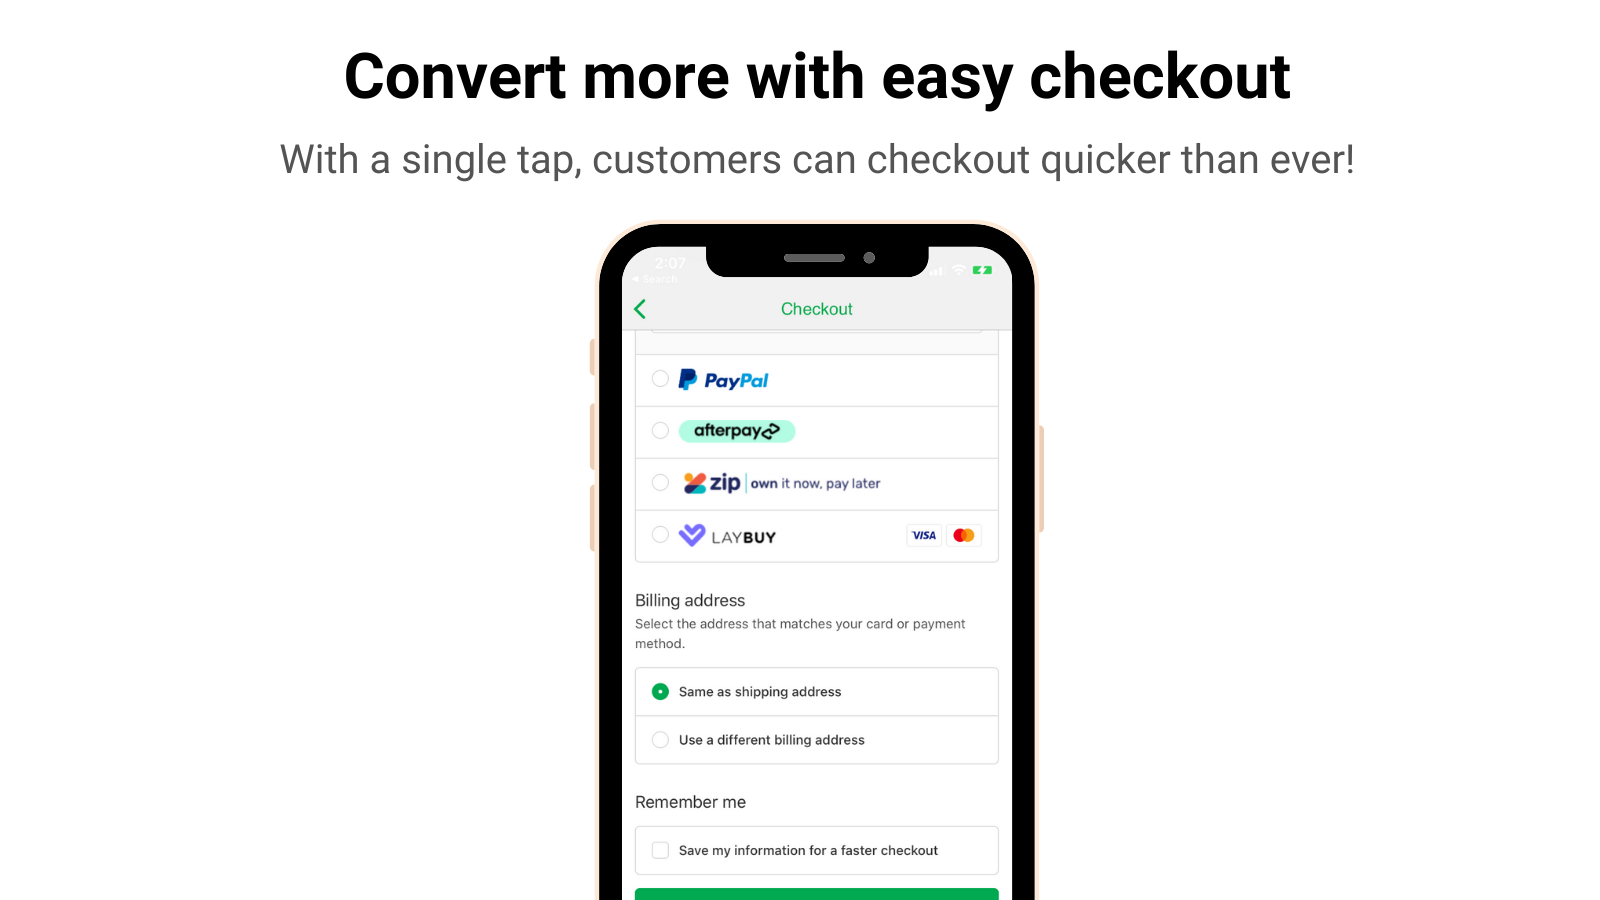 Convert more with easy checkout